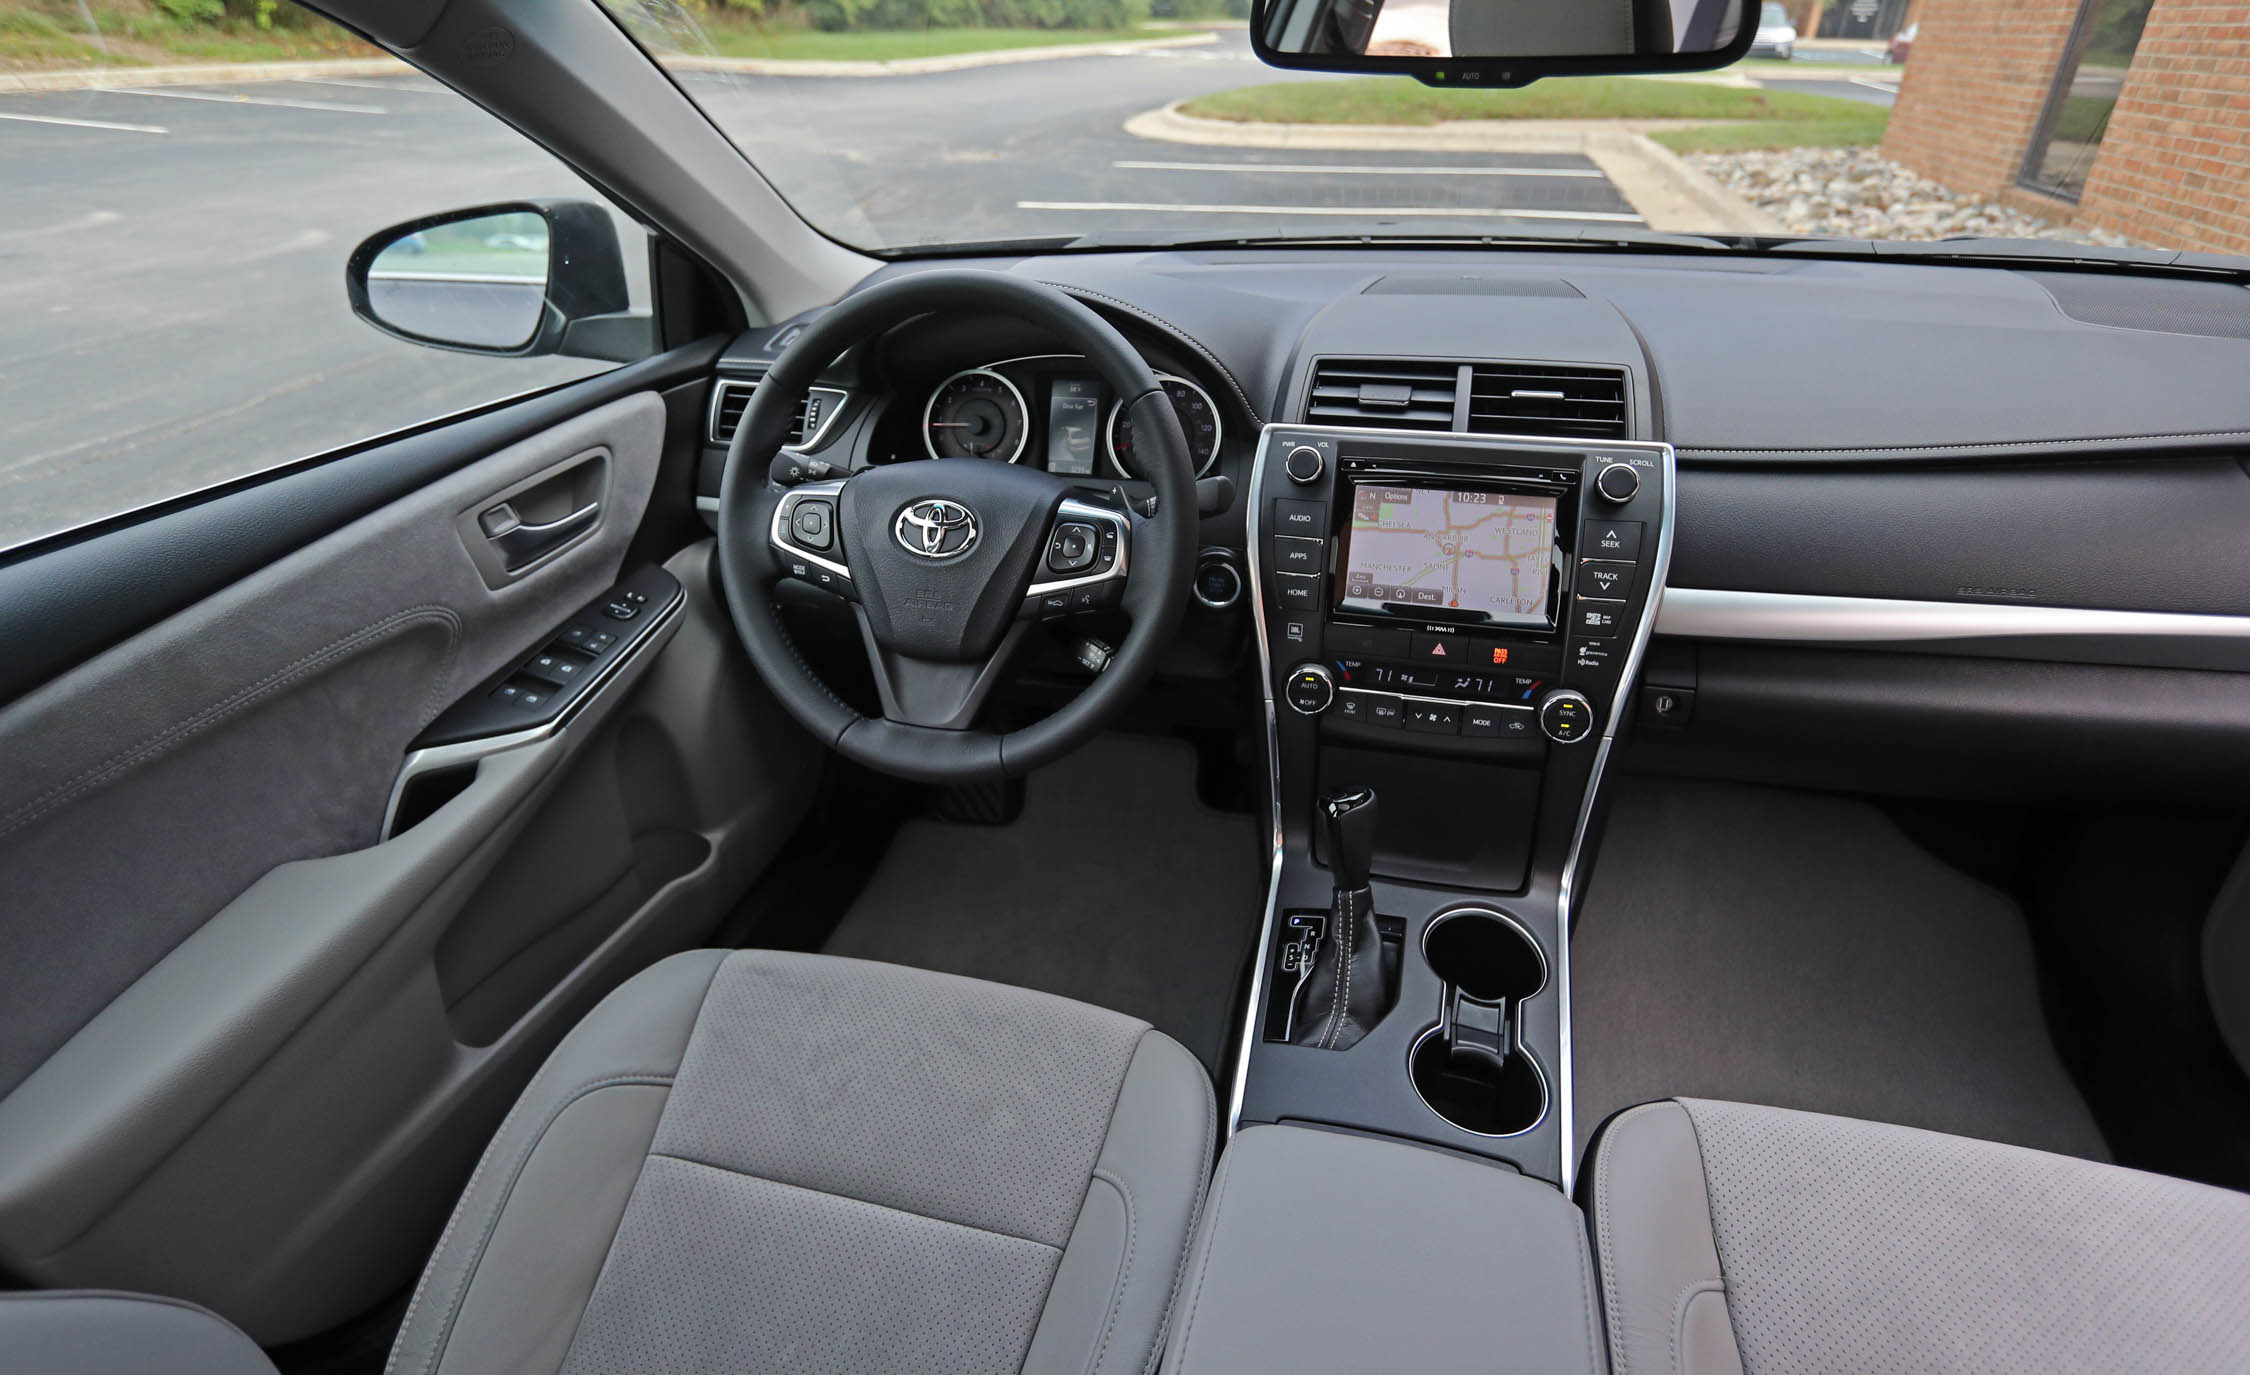 toyota camry 2017 le interior new 2017 toyota camry price. Black Bedroom Furniture Sets. Home Design Ideas